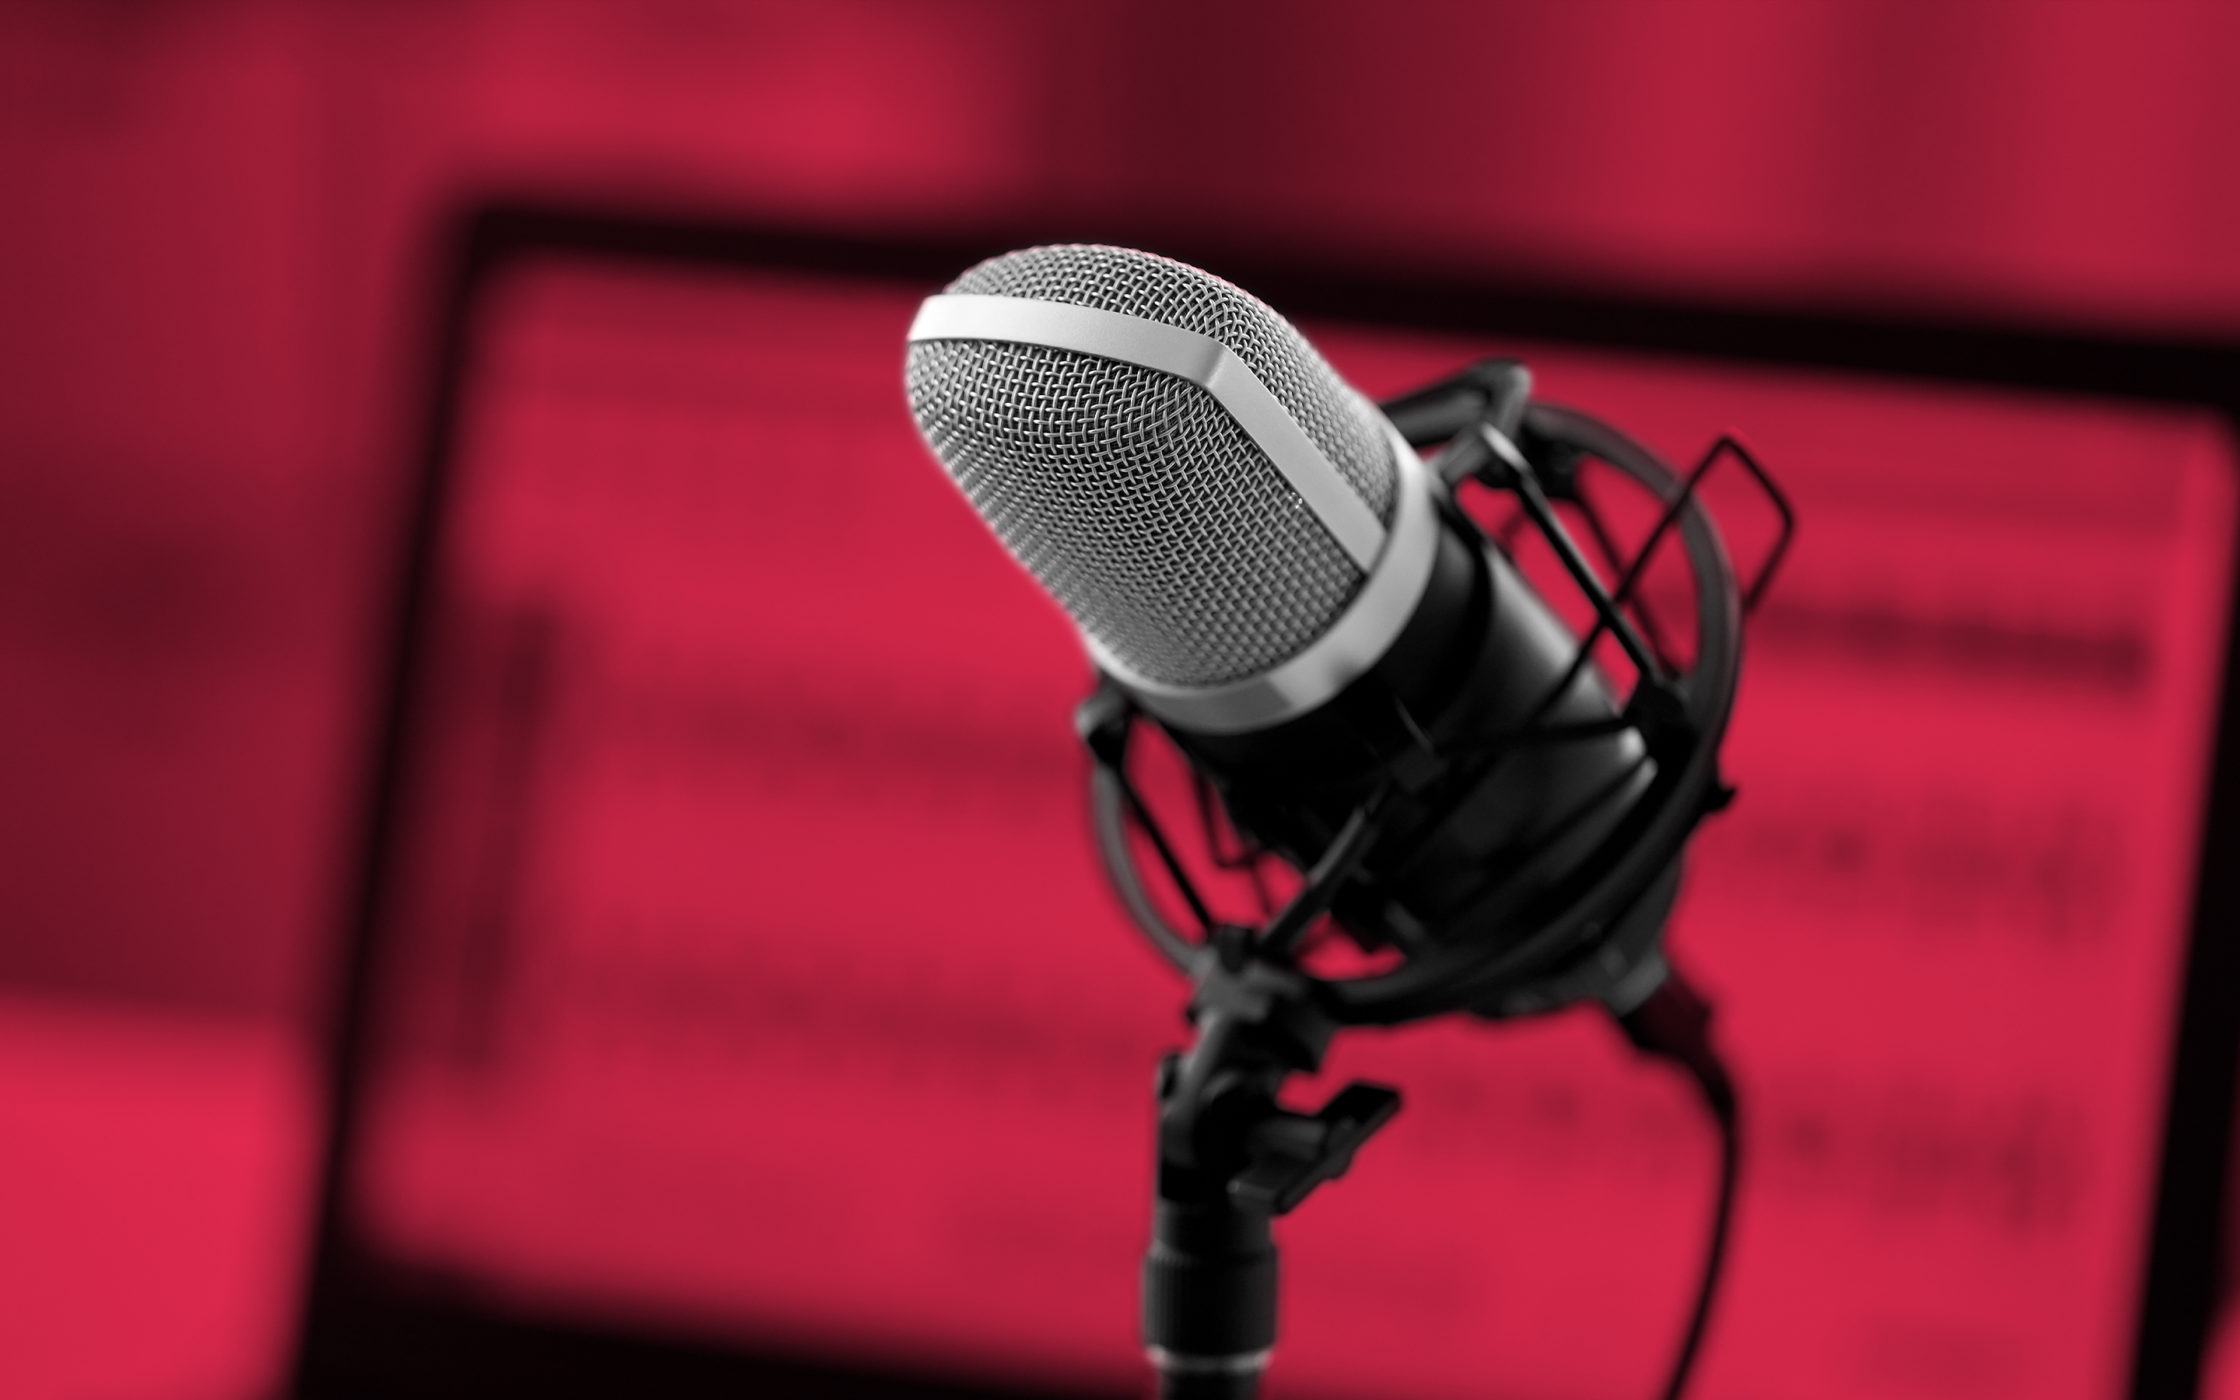 A podcast microphone set against a maroon background